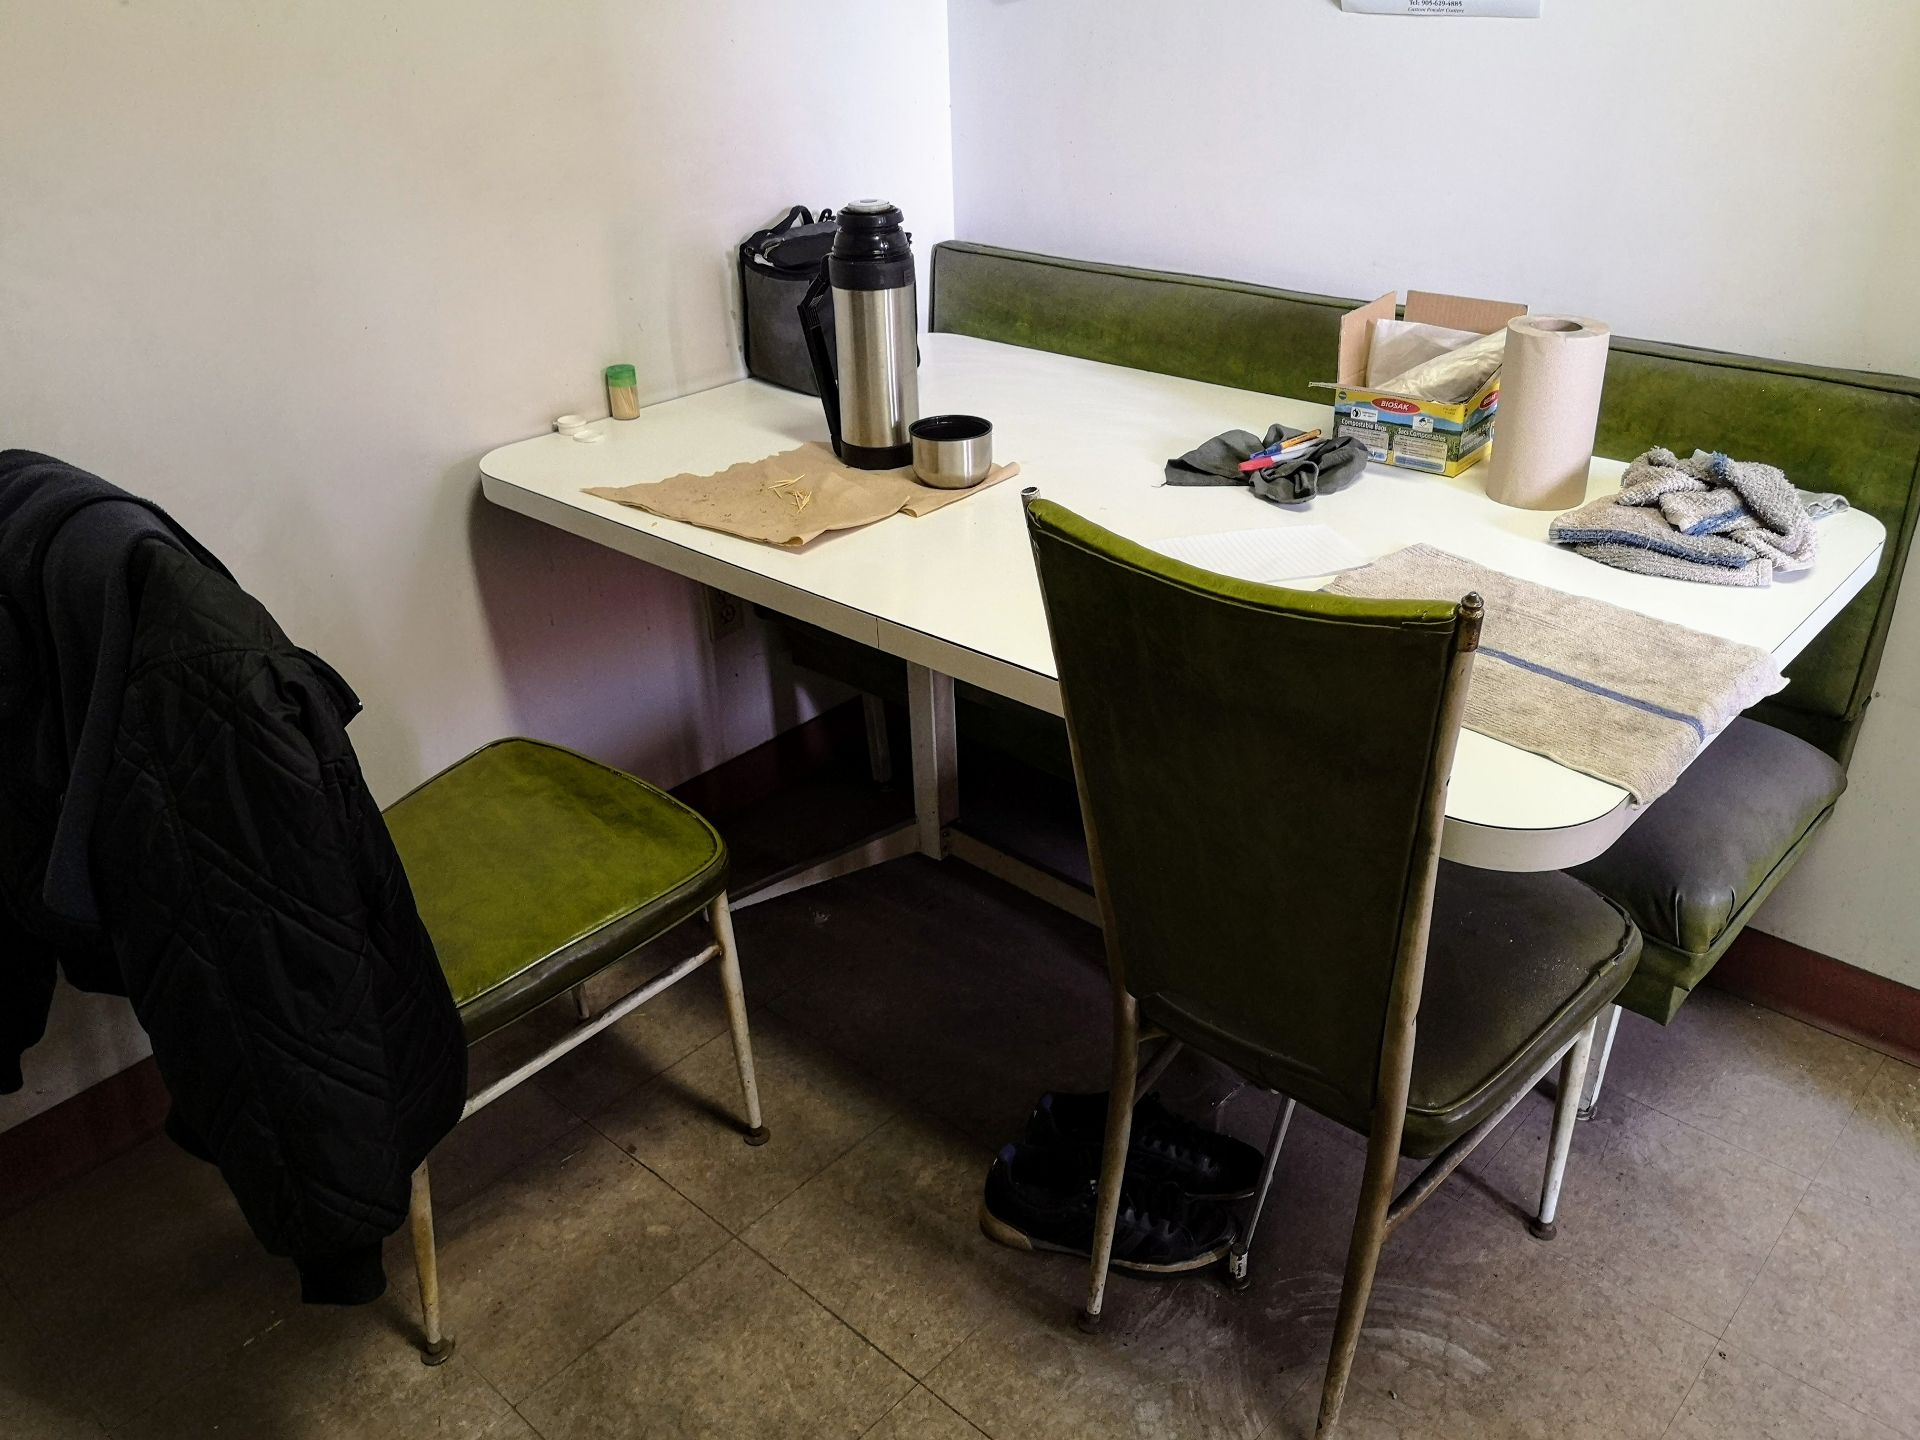 LOT CONTENTS OF LUNCH ROOM (NO PERSONAL EFFECTS) - Image 3 of 3